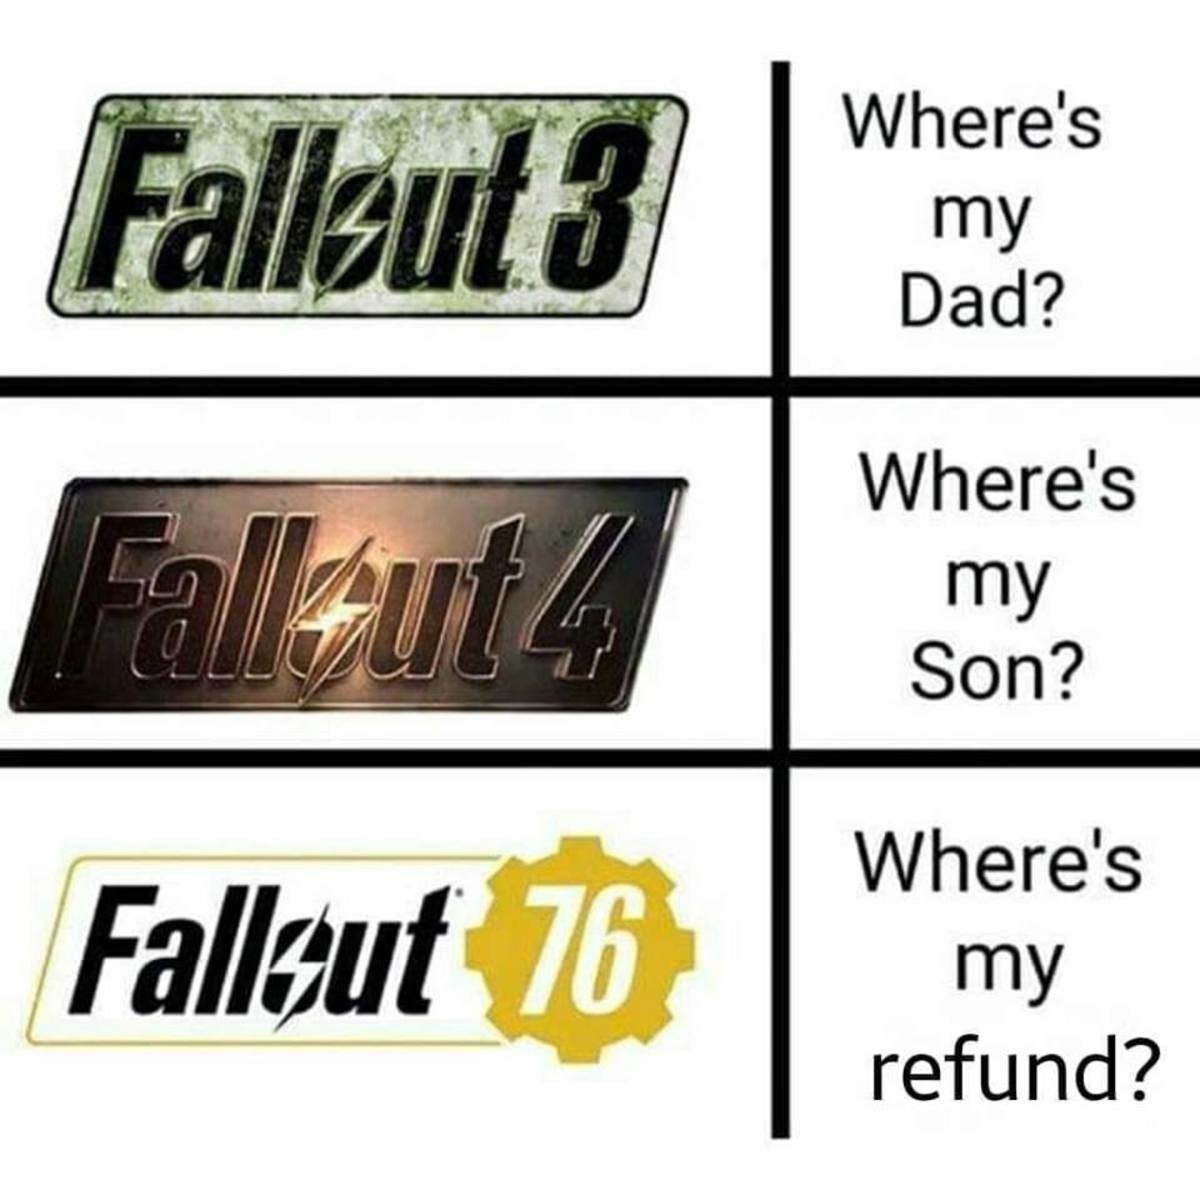 Bethesda's Fallout games in a nutshell. .. tfw haven't paid for a Bethesda game sense that dumpster fire skyrim